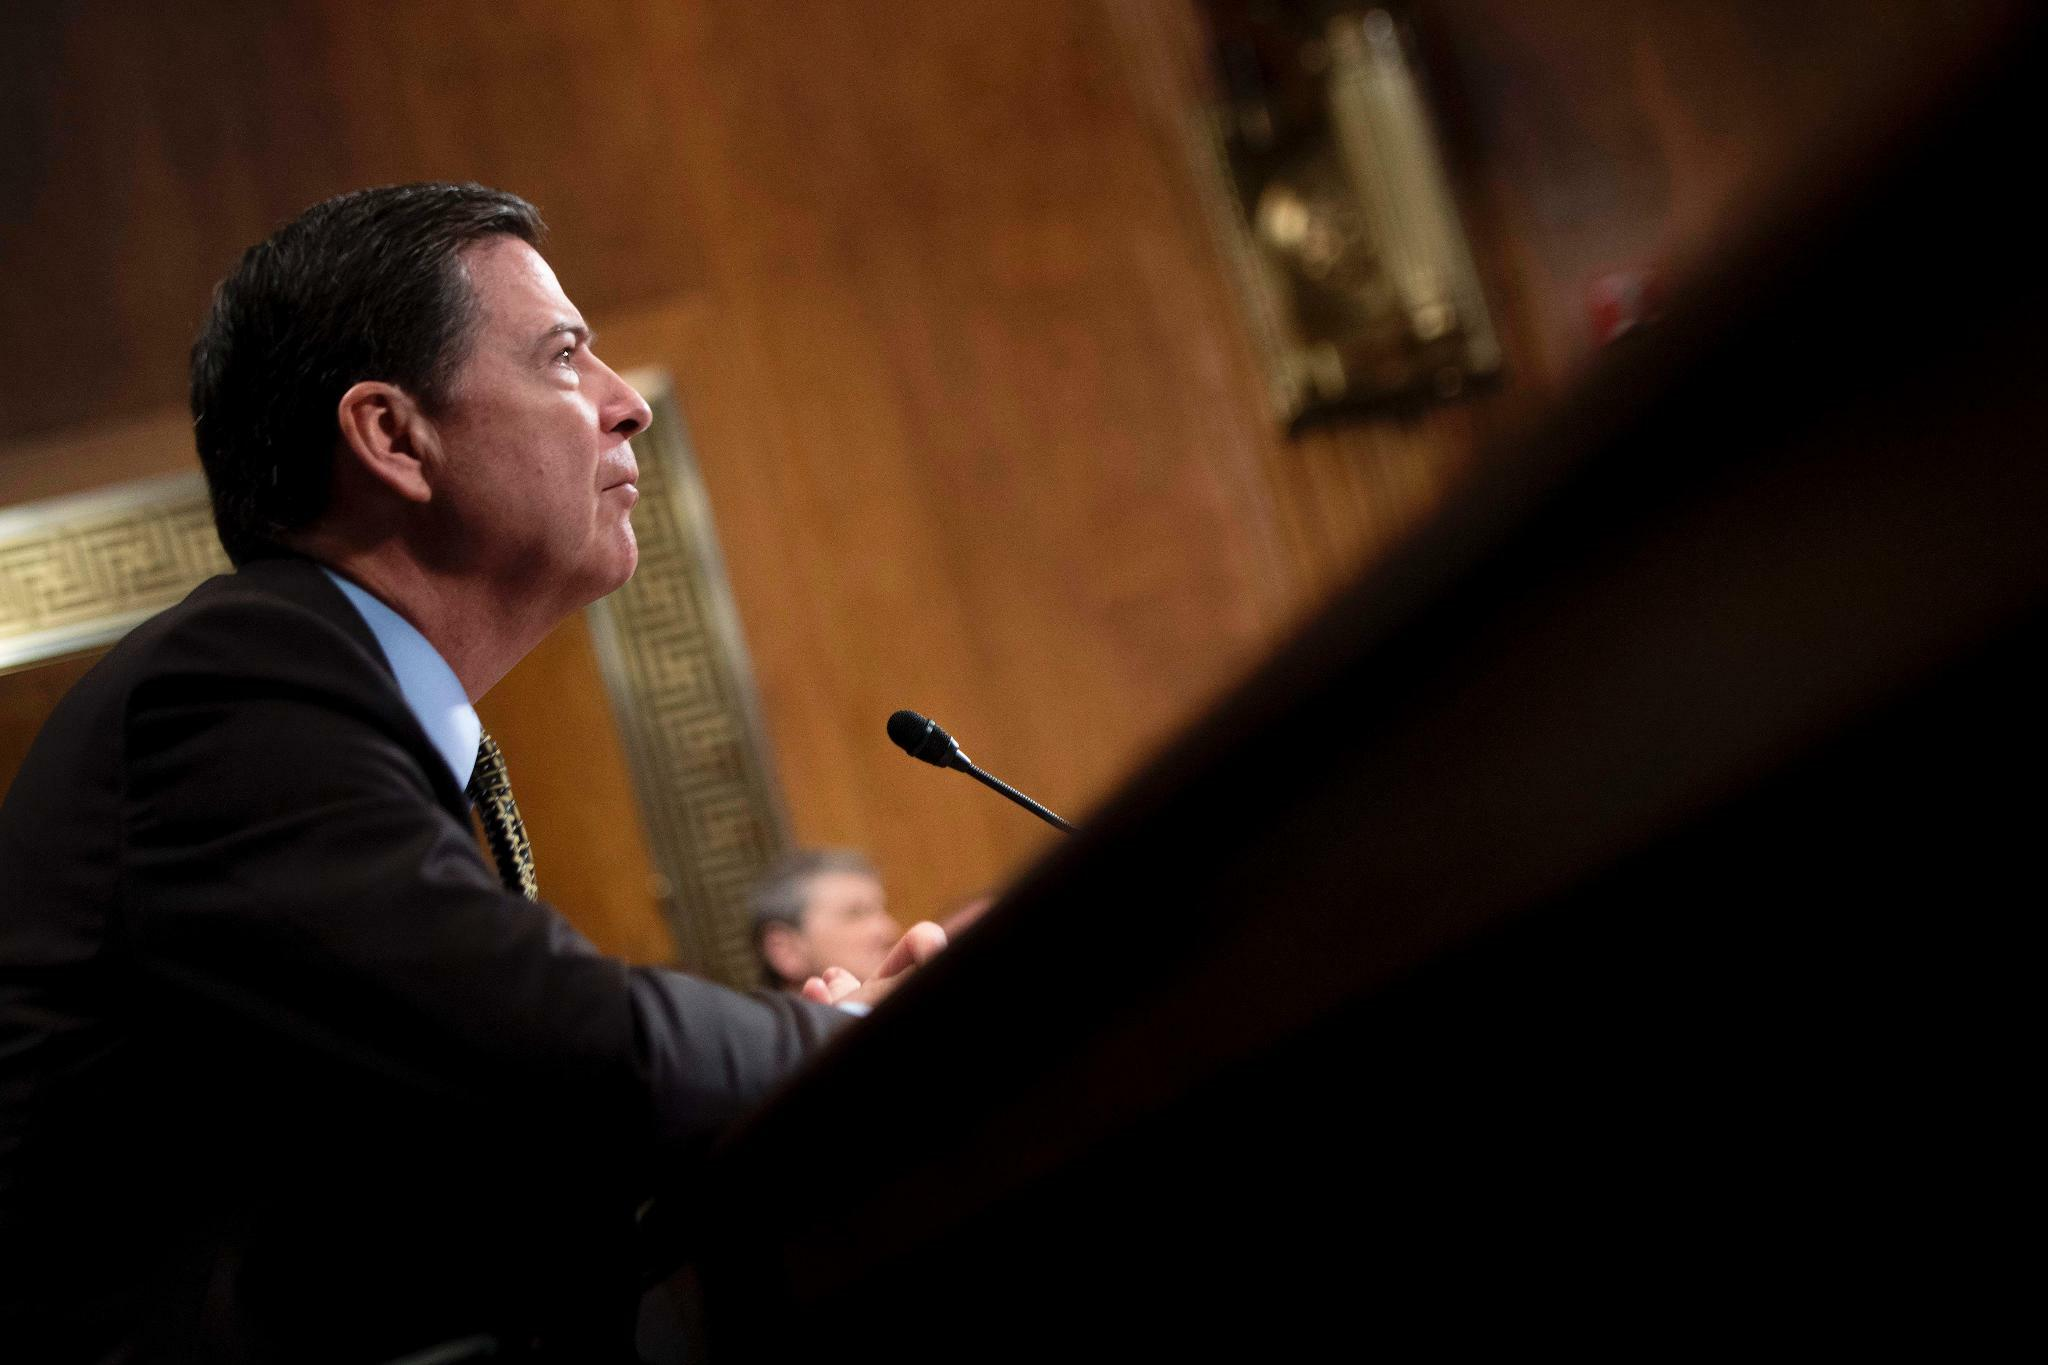 USA: Trump feuert FBI-Chef James Comey